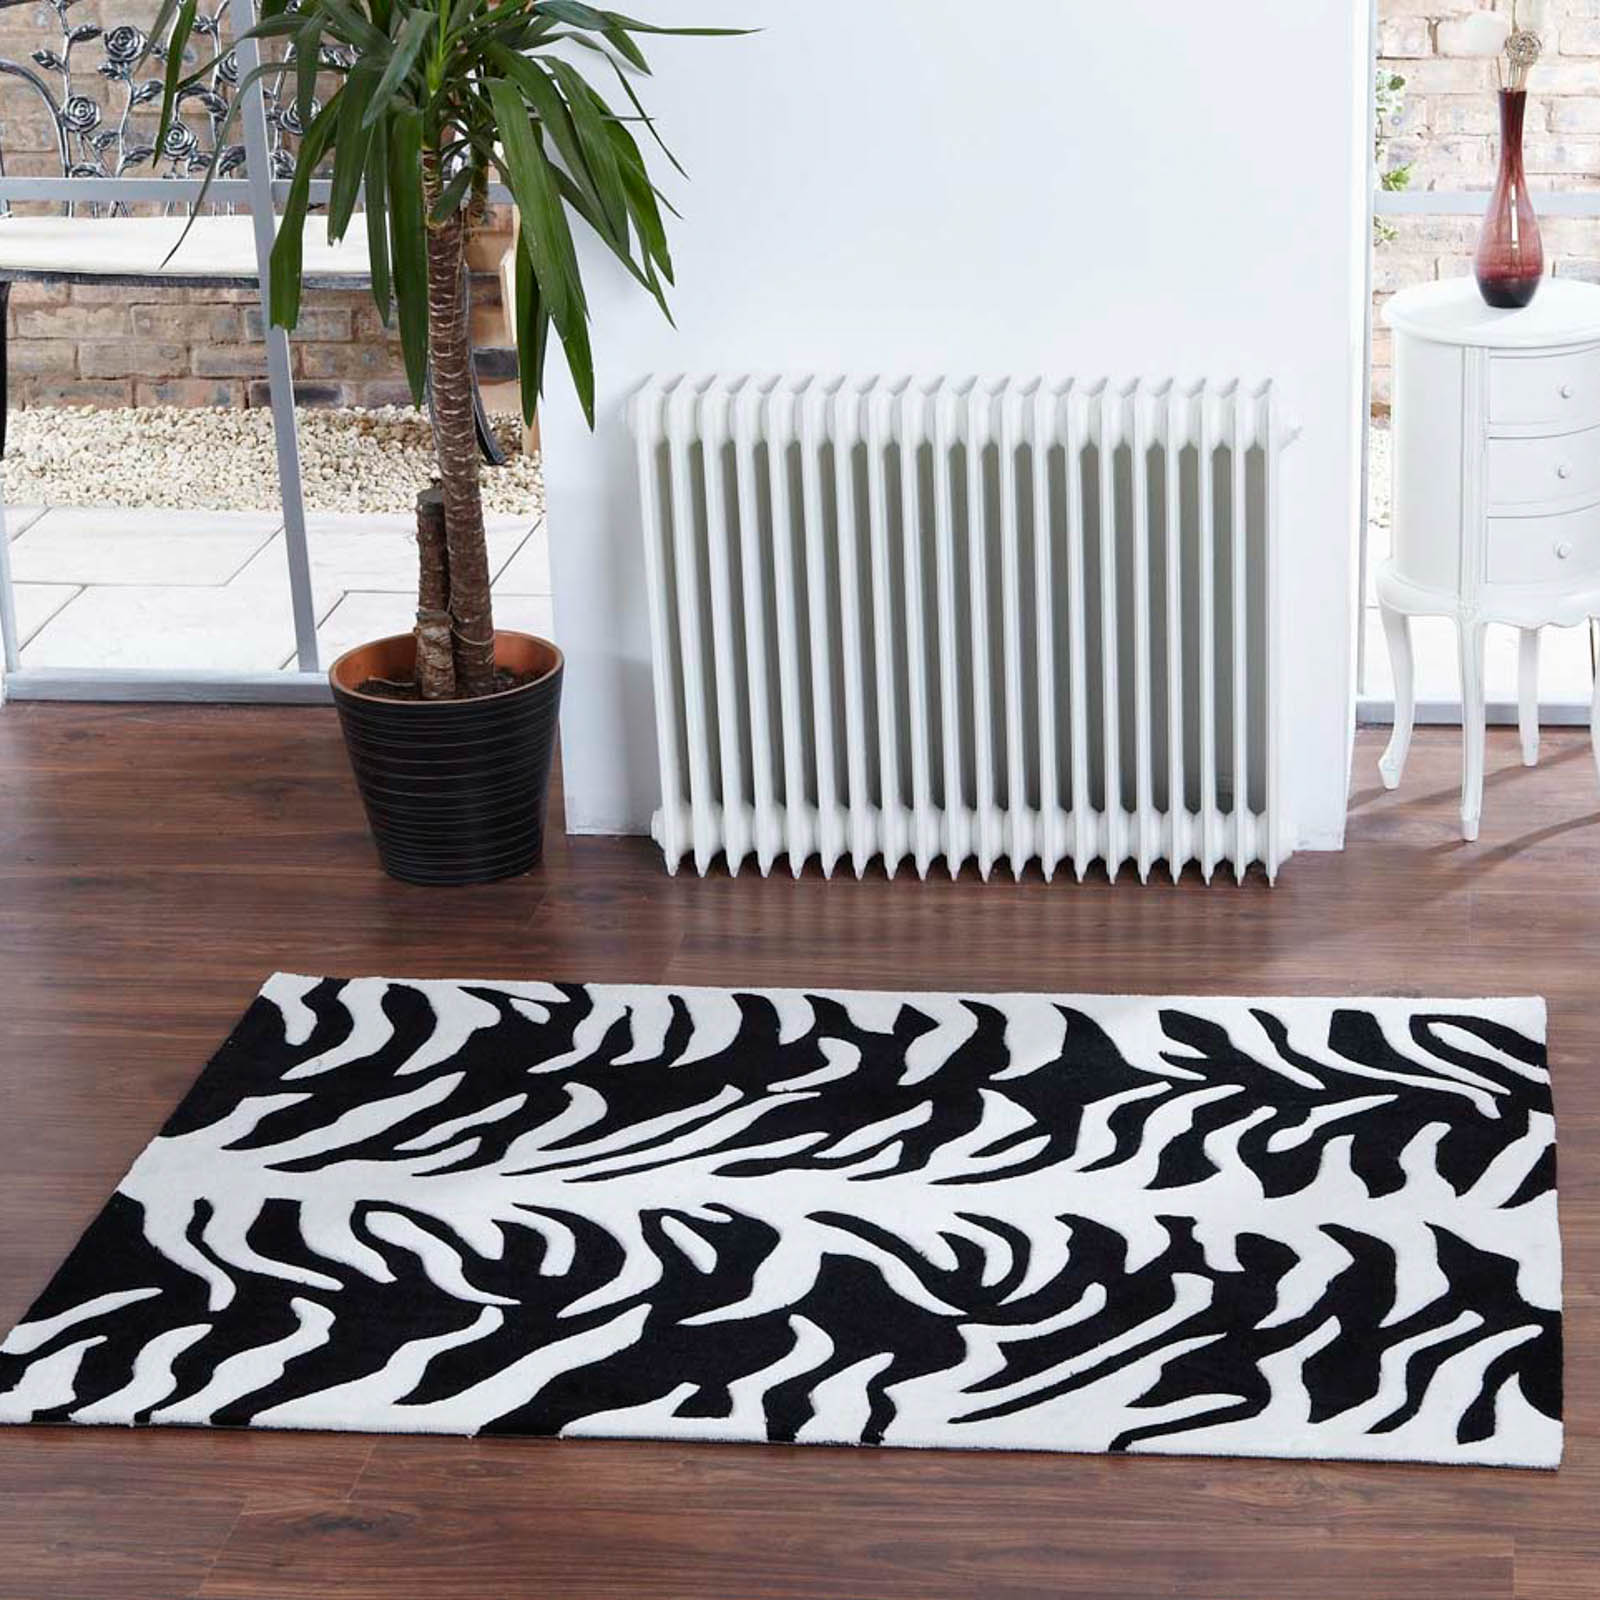 Aspire Tigre Rugs in Cream Black